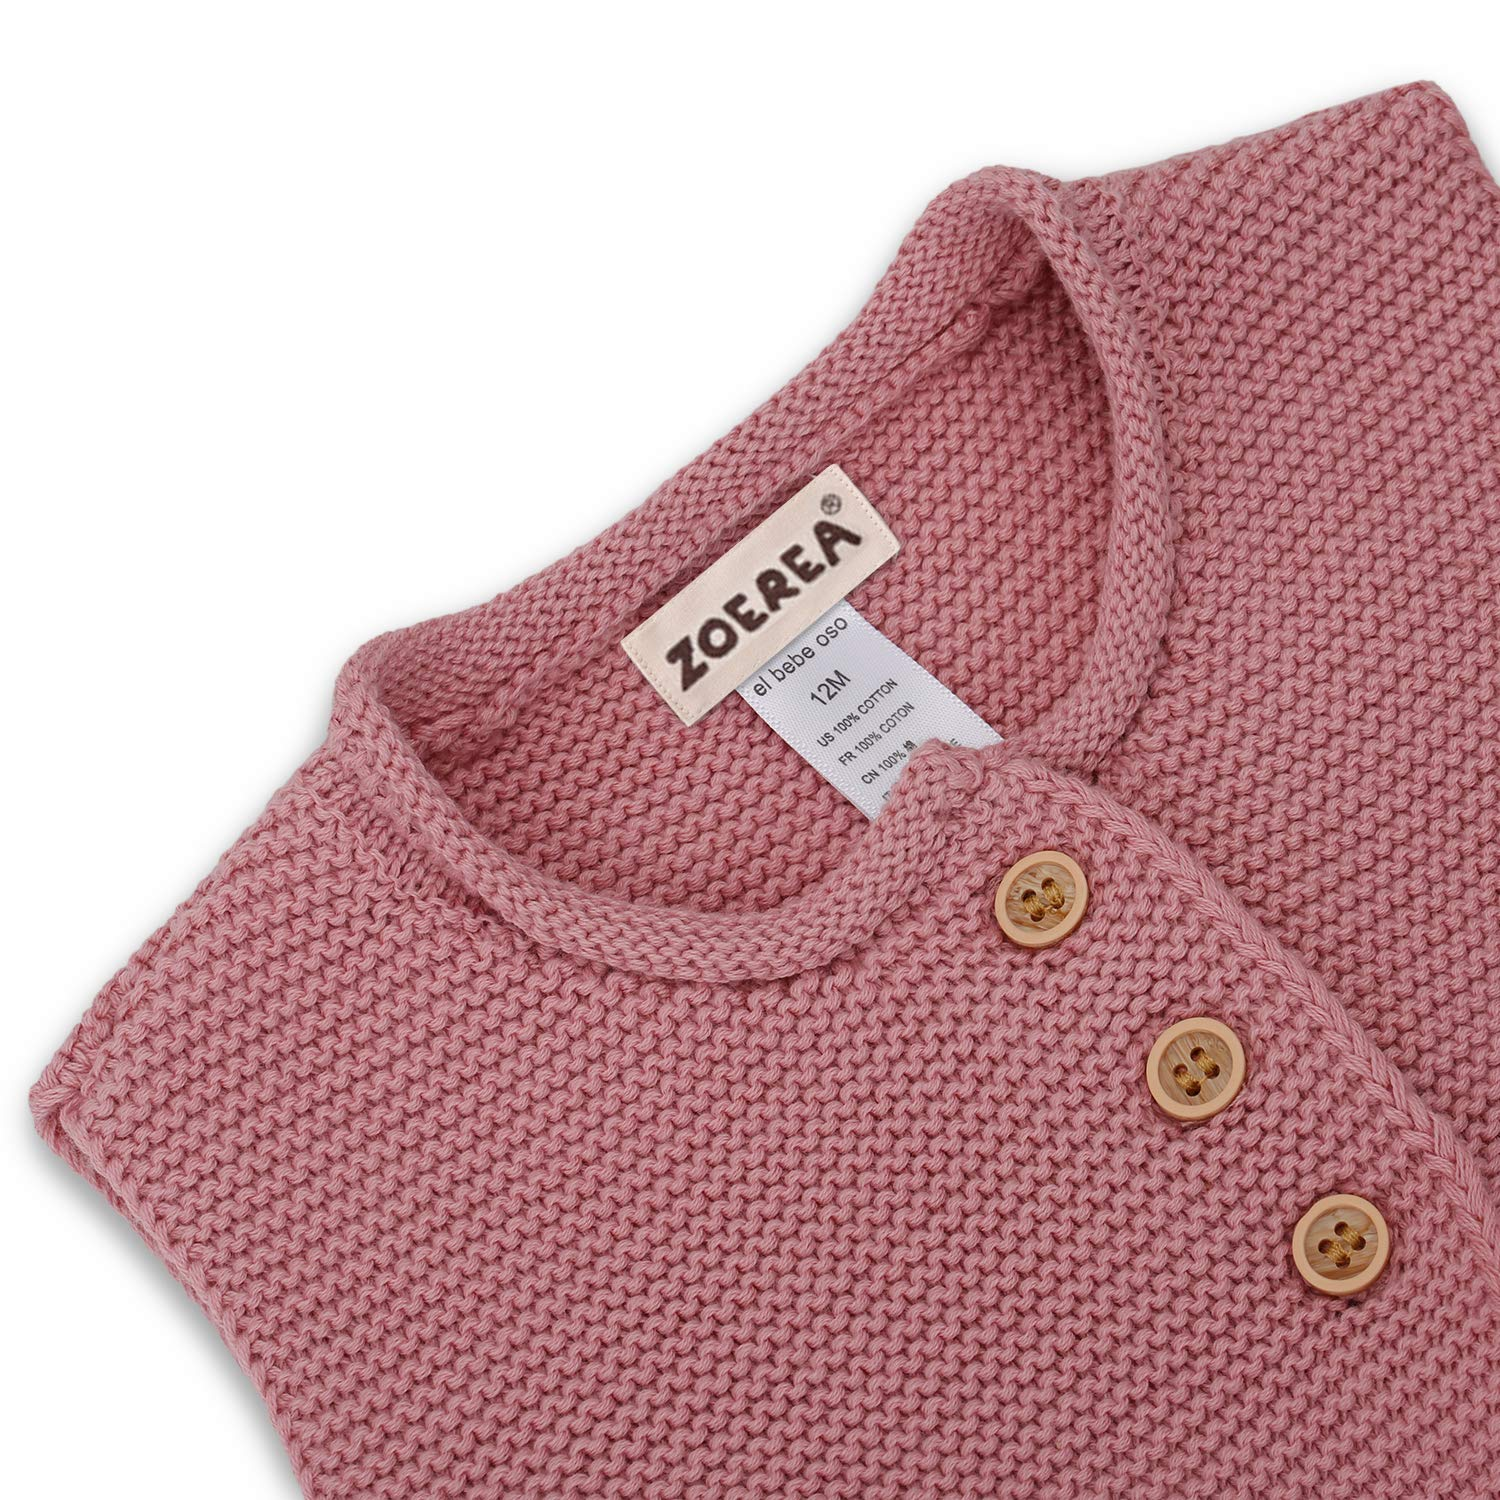 Baby Knitted Sweater Romper 0-18 Months Solid Color Thick Cotton O-neck Autumn Winter Infant Boy Girl Baby Clothing Easy To Repair Boys' Baby Clothing